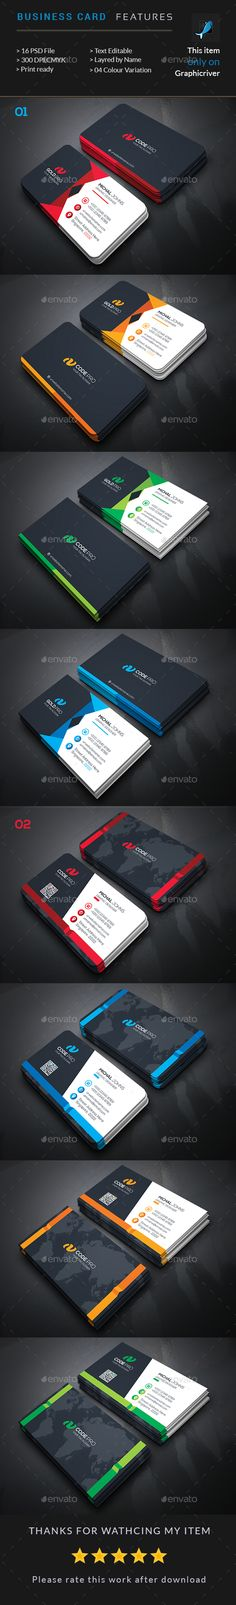 Business Card Bundle (2 in 1) - Business Cards Print Templates Download here : http://graphicriver.net/item/business-card-bundle-2-in-1/16847348?s_rank=33&ref=Al-fatih